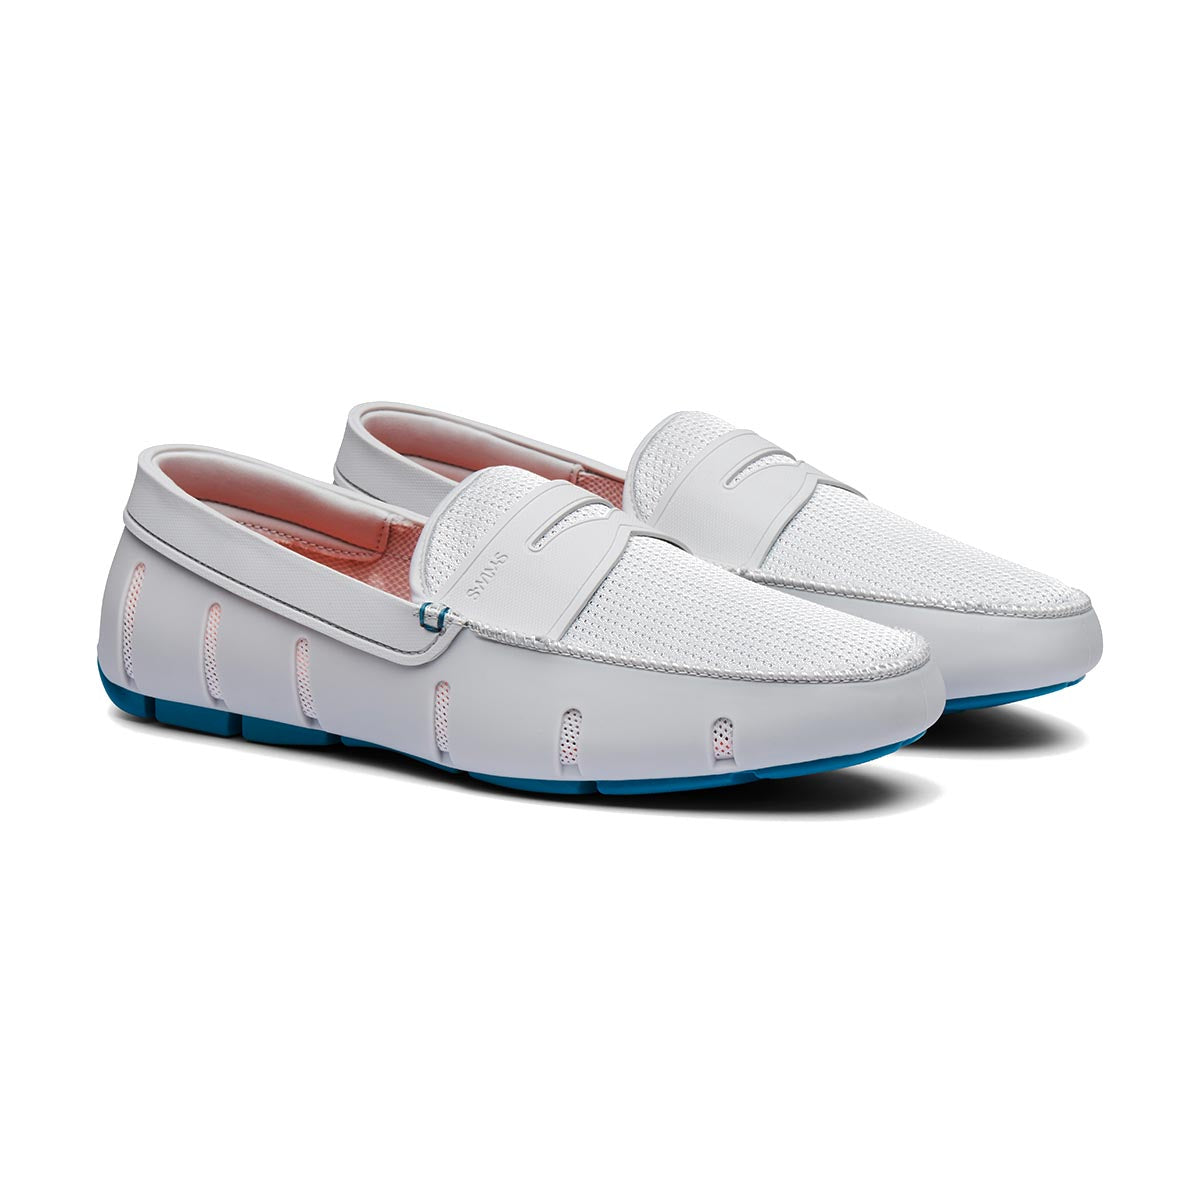 Penny Loafer - background::white,variant::Glacier Gray/Turkish Tile